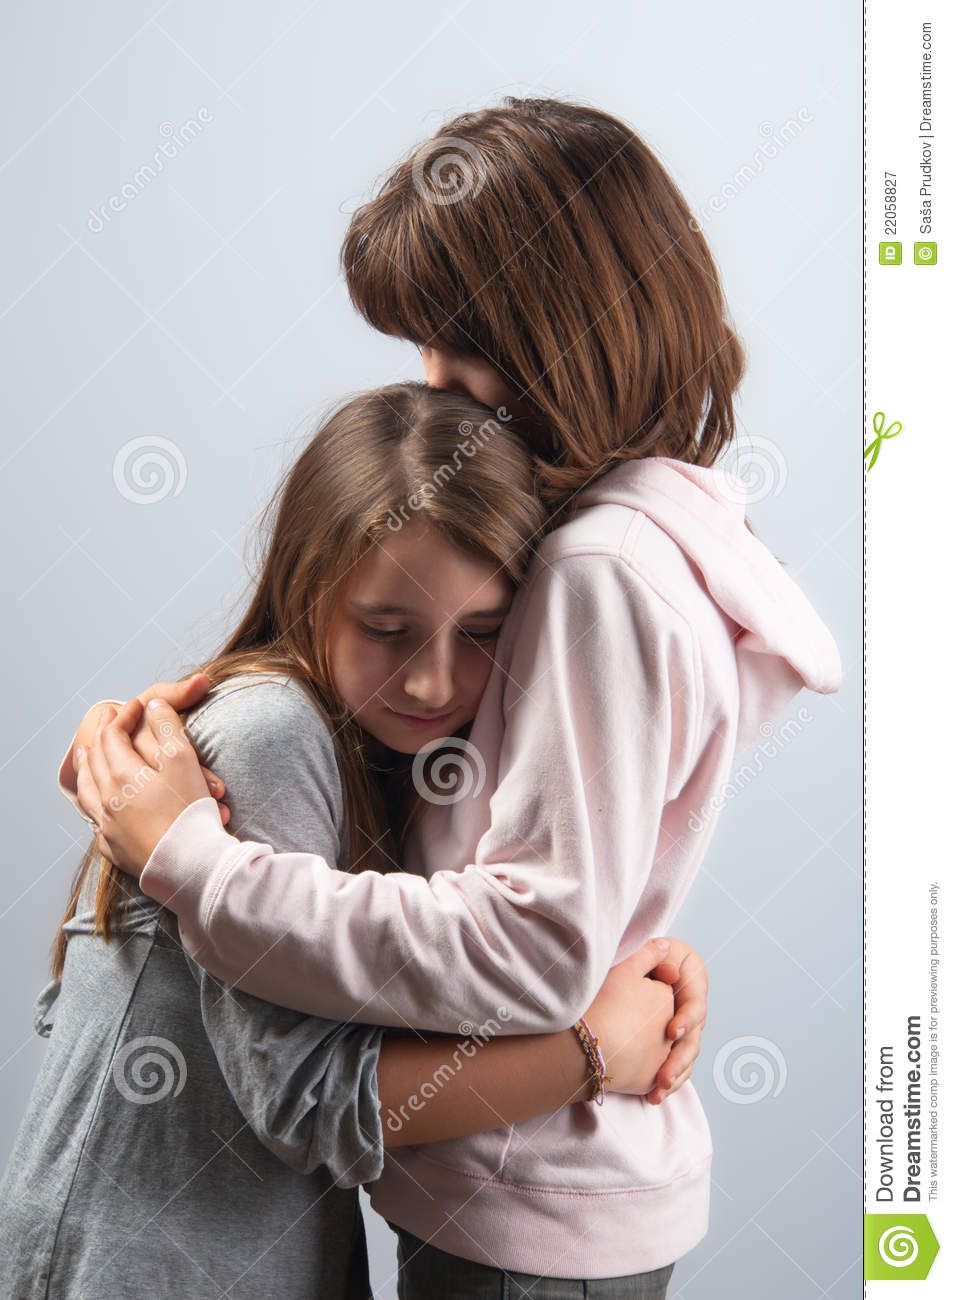 Teenage Girls Hugging Each Other Royalty Free Stock ...